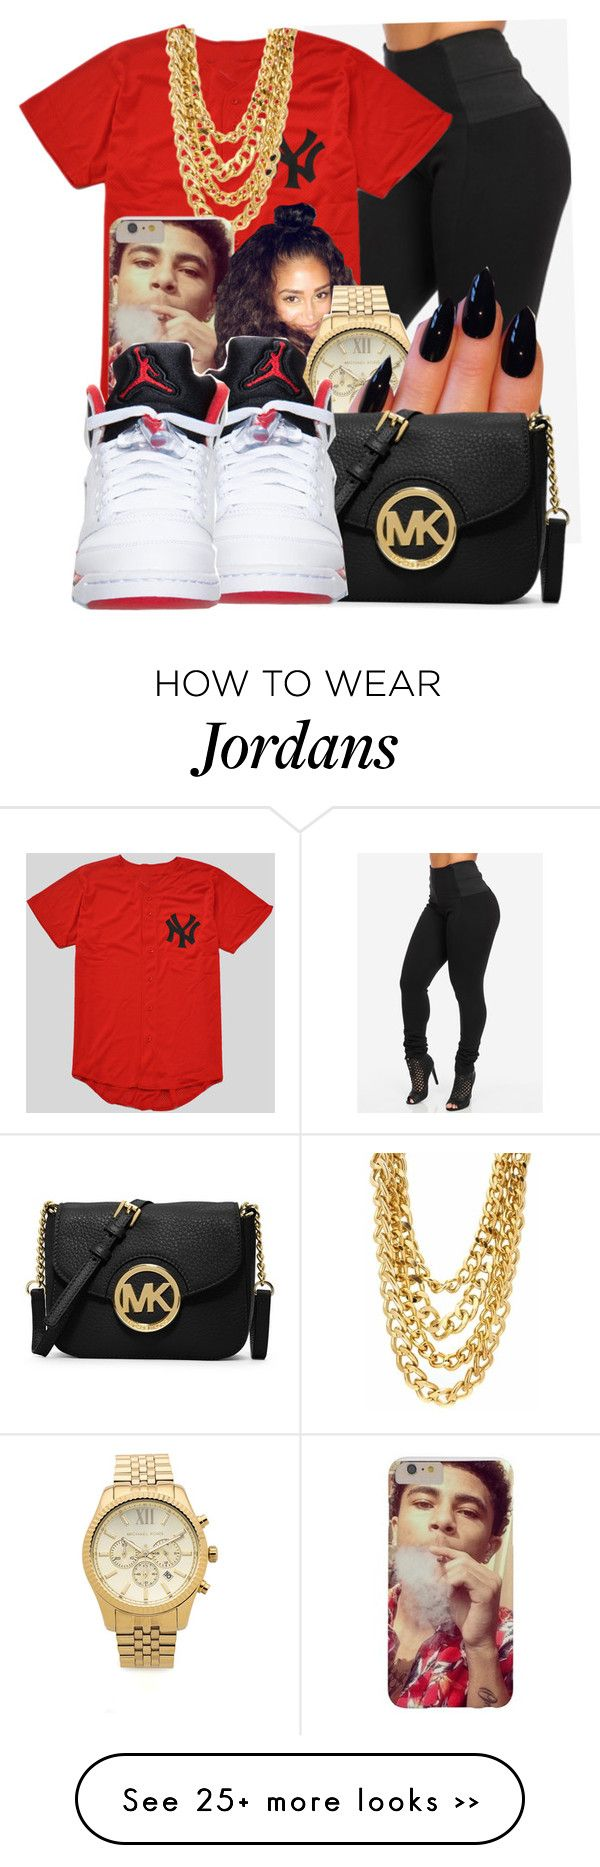 """Untitled #75"" by oh-thatasia on Polyvore featuring Michael Kors and MICHAEL Michael Kors @@@w0lfieee"